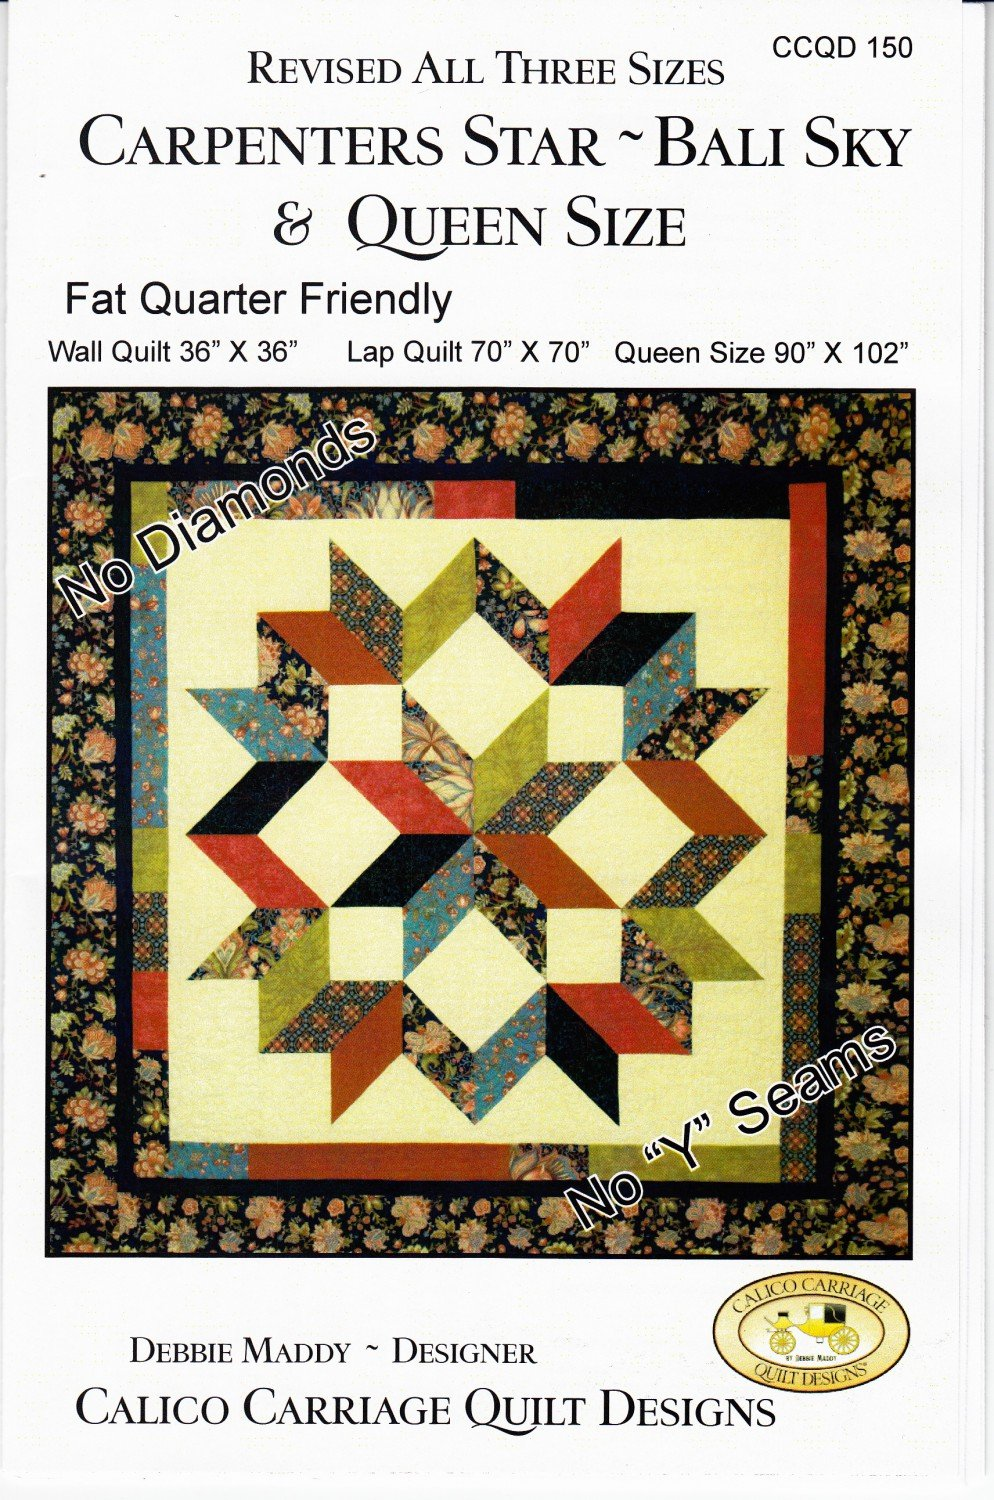 Carpenters Star Bali Sky Quilt Pattern from Calico Carriage Quilt Designs